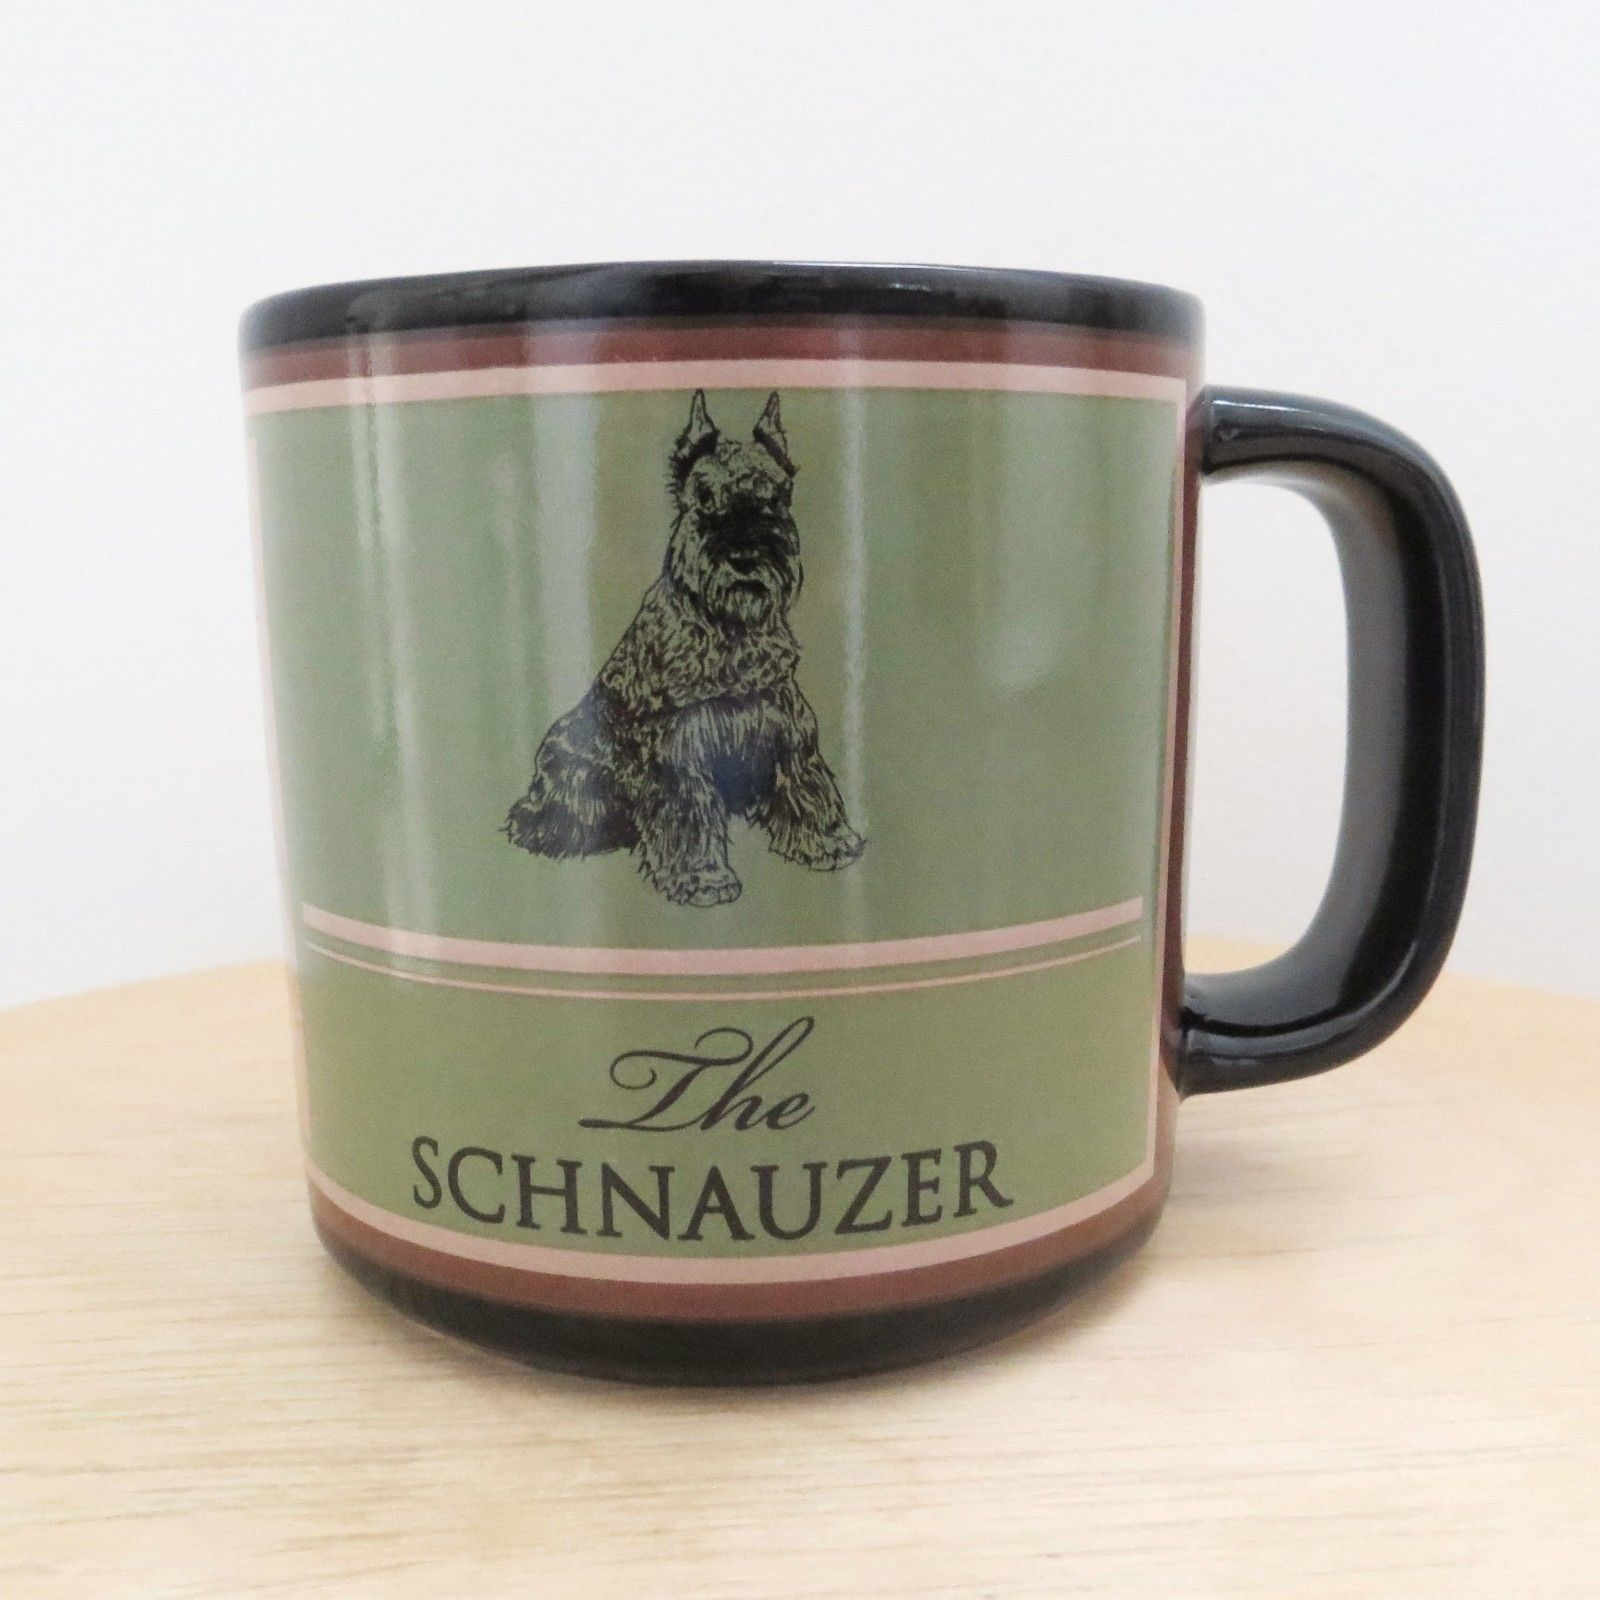 Primary image for The Schnauzer Dog Coffee Tea Cup Mug Animal Lover Pet Owner Russ Berrie & Co.